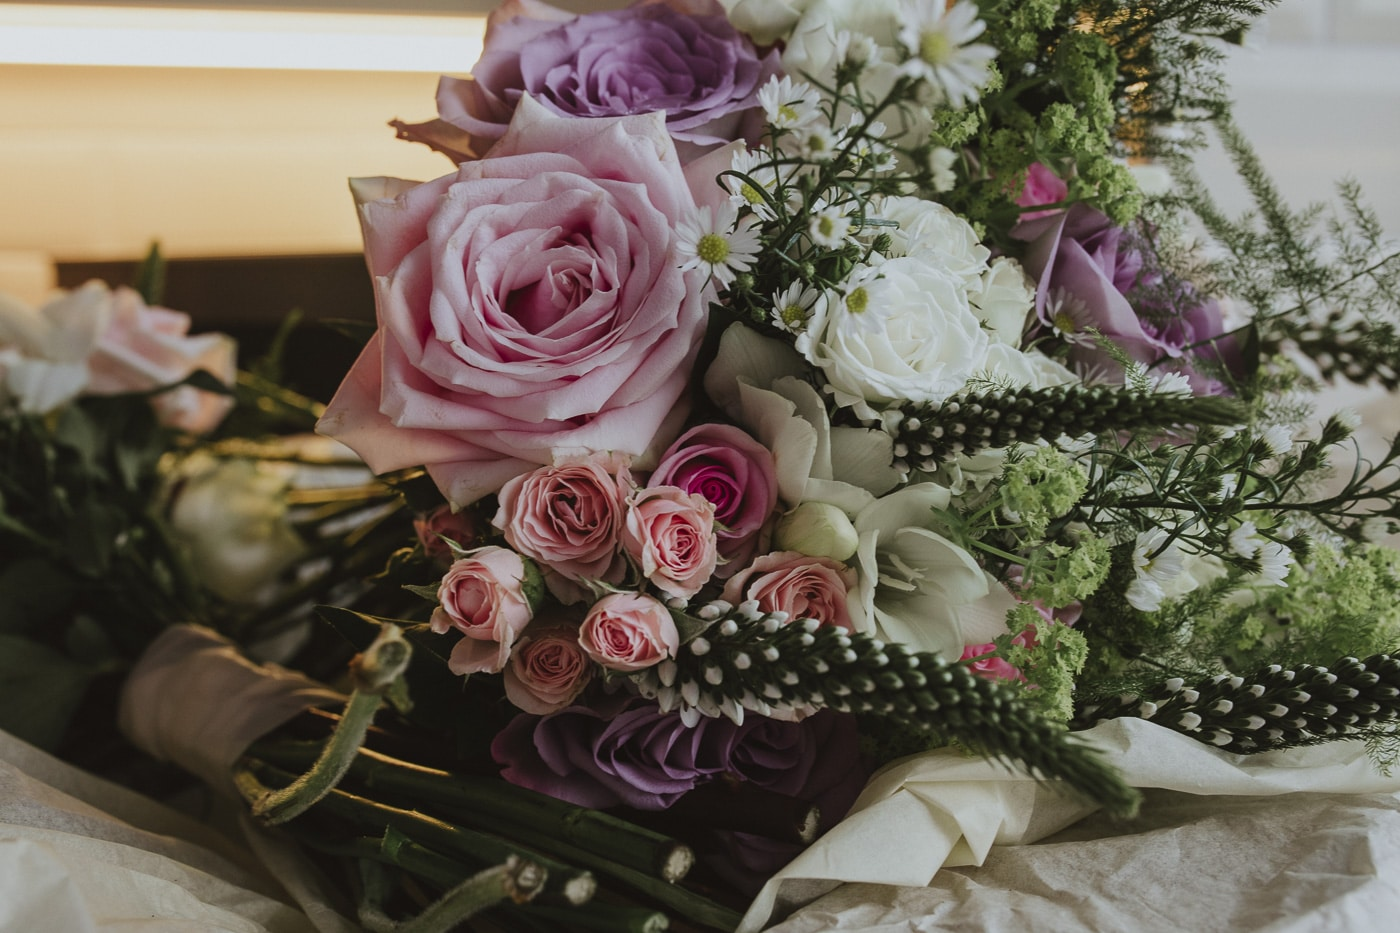 Fresh flower bouquet with pink roses for Cumbria wedding by Joshua Wyborn